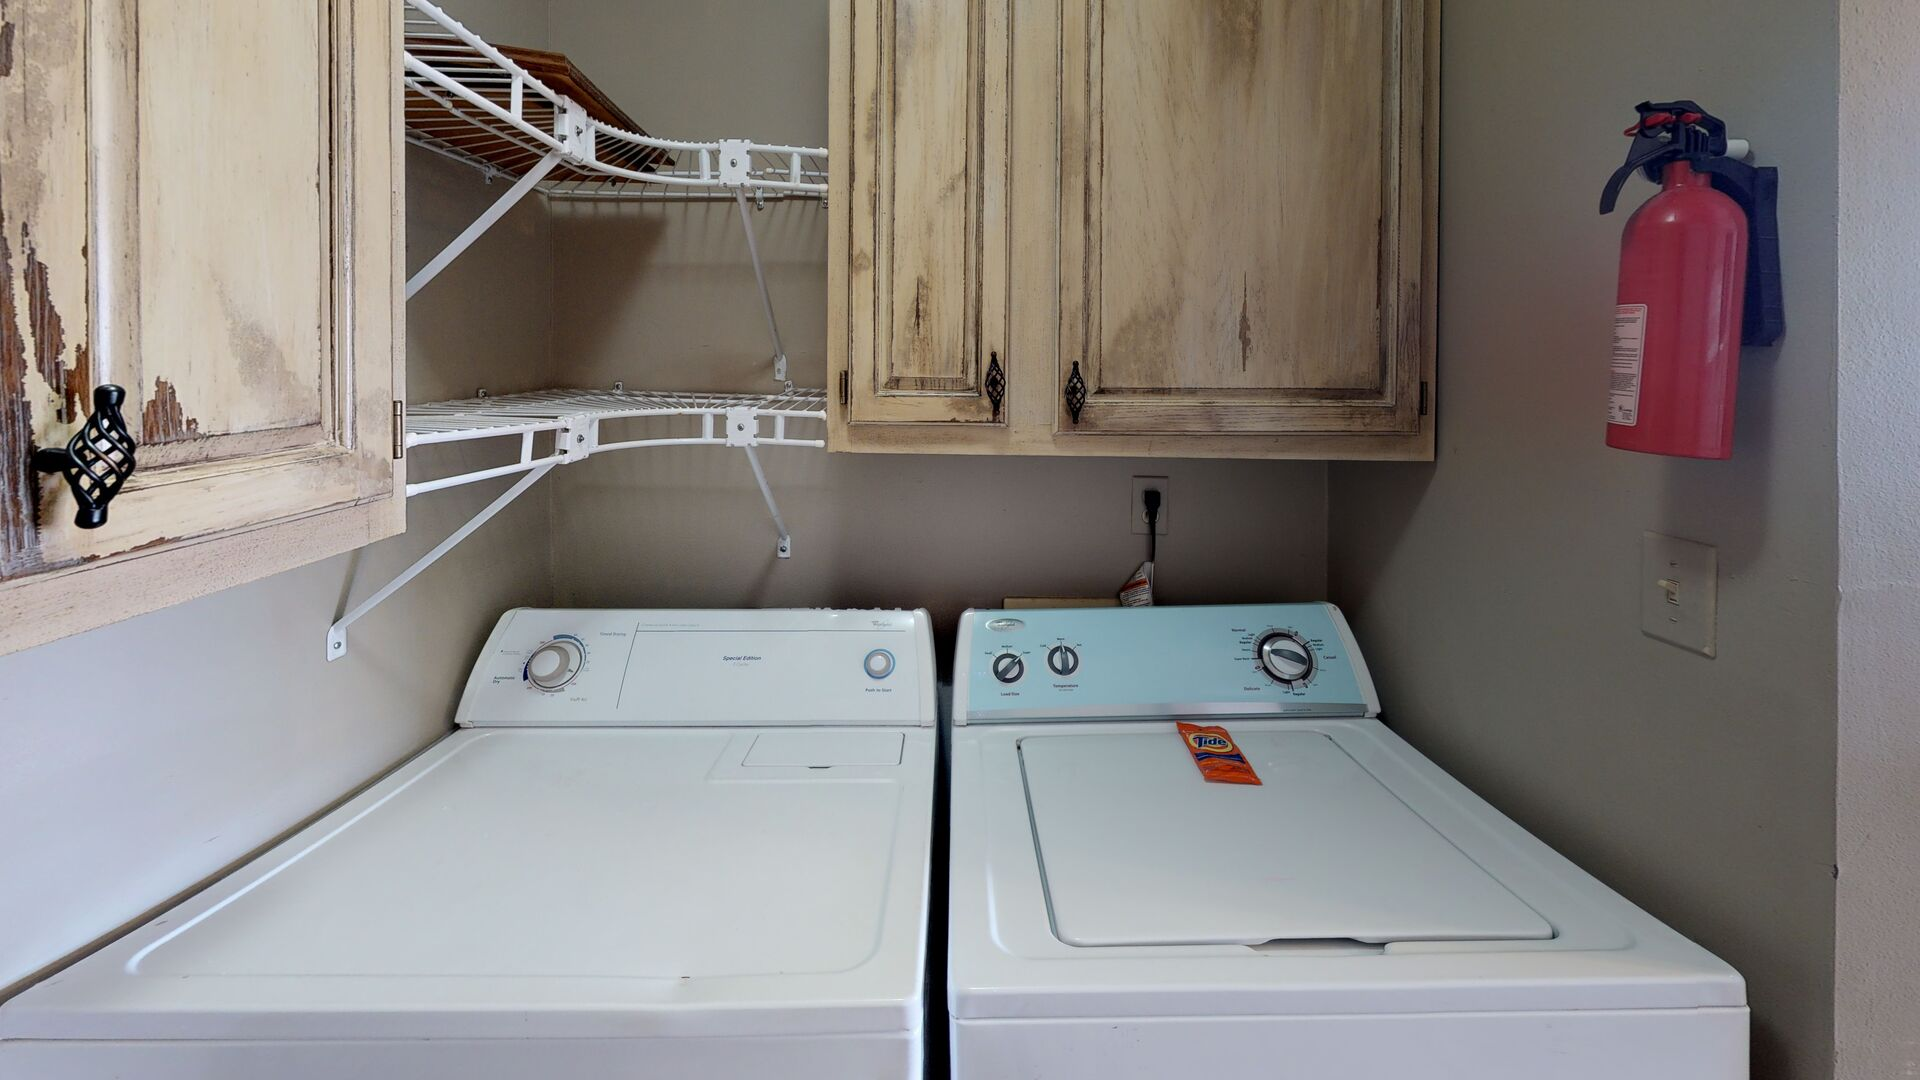 Washer, Dryer, and Wall Cabinets in the Laundry Room.